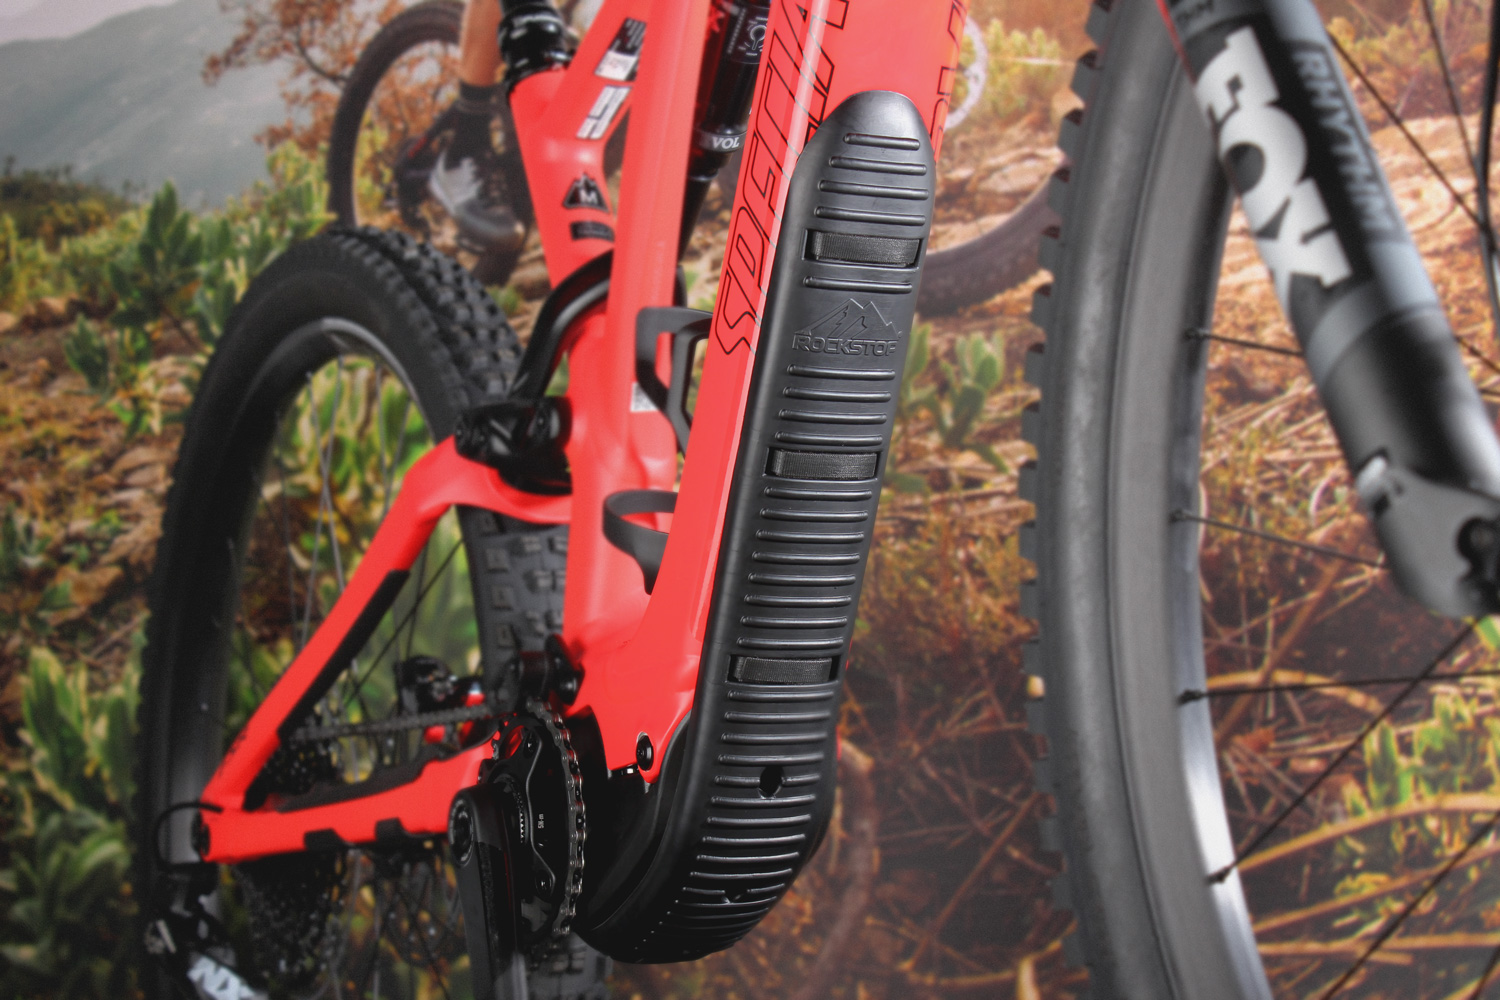 A close up image of Frameguard situated on a red Specialized mountain bike.